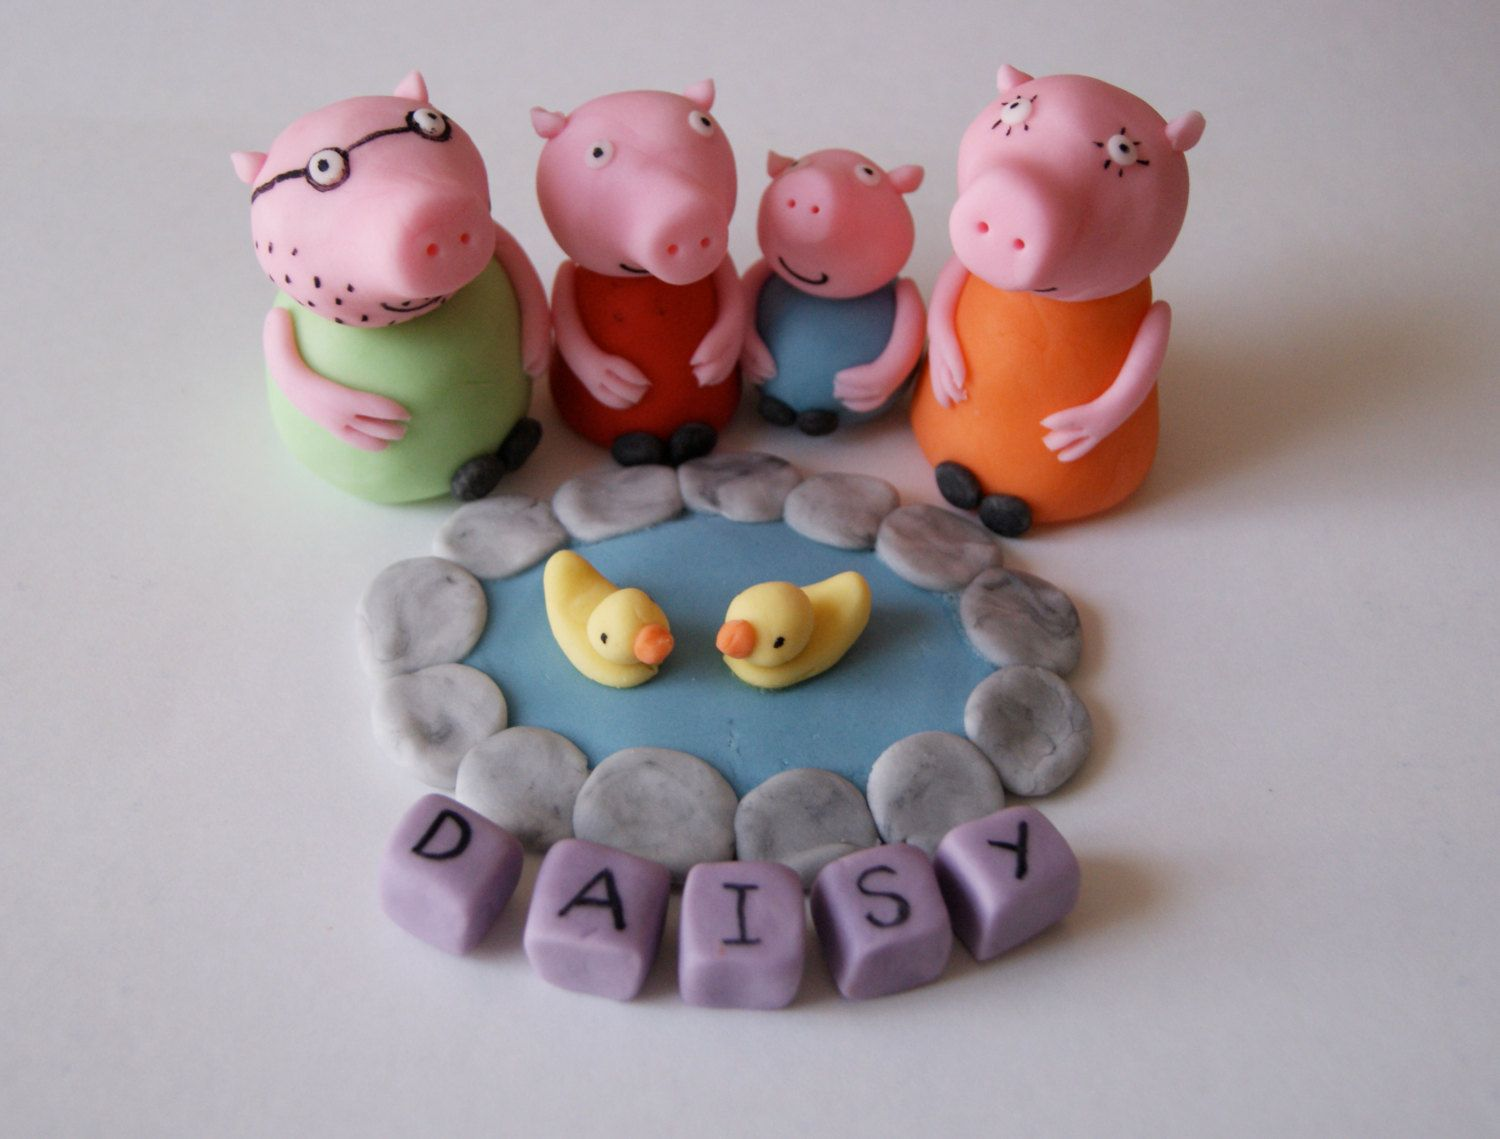 Handmade peppa pig pond and figures cake by rosiemag114 on